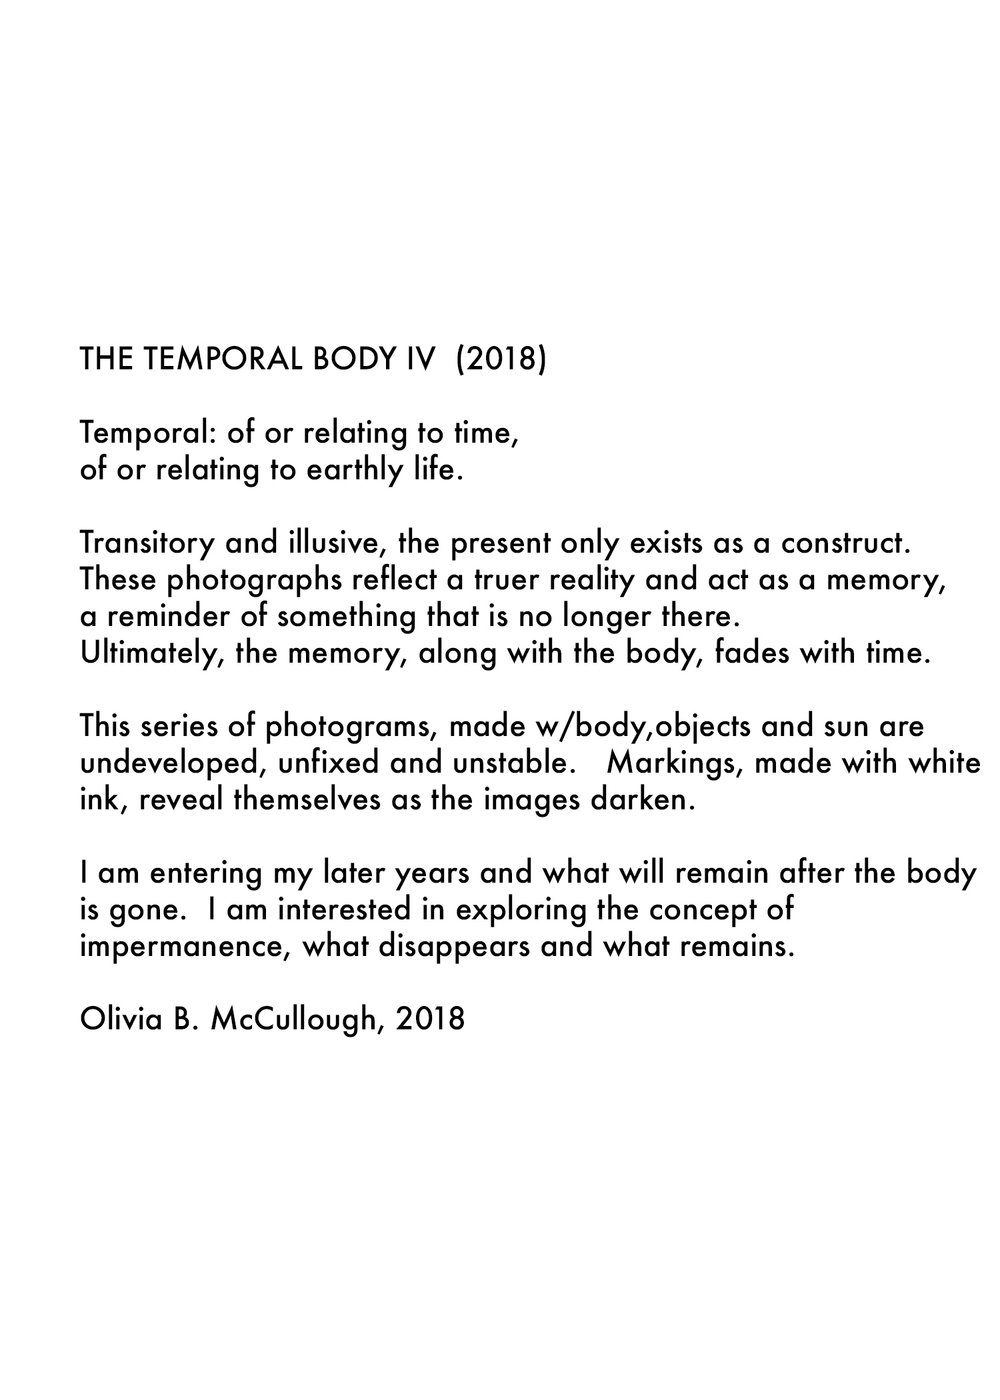 Temporal-Body-Statement-Working-copy copy.jpg